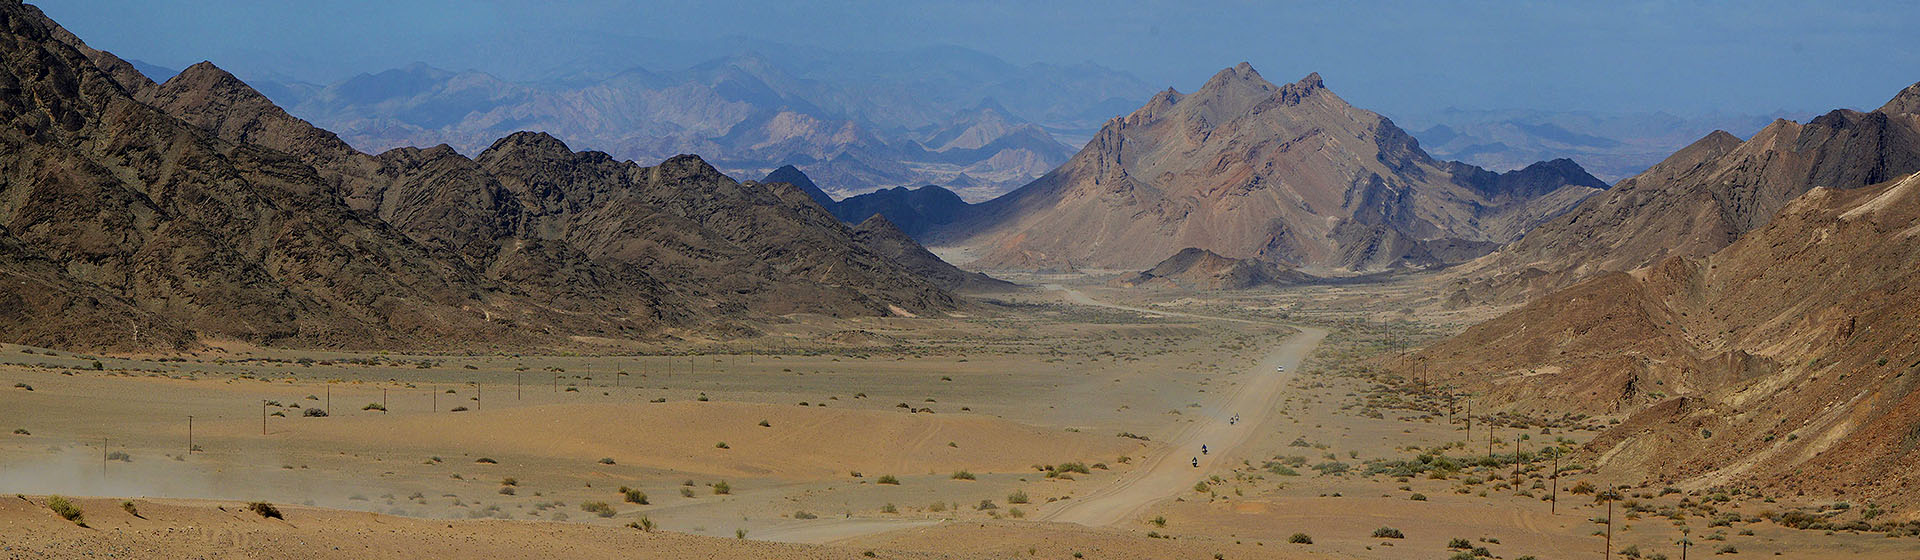 Triumph Motorcycle Tours in Namibia